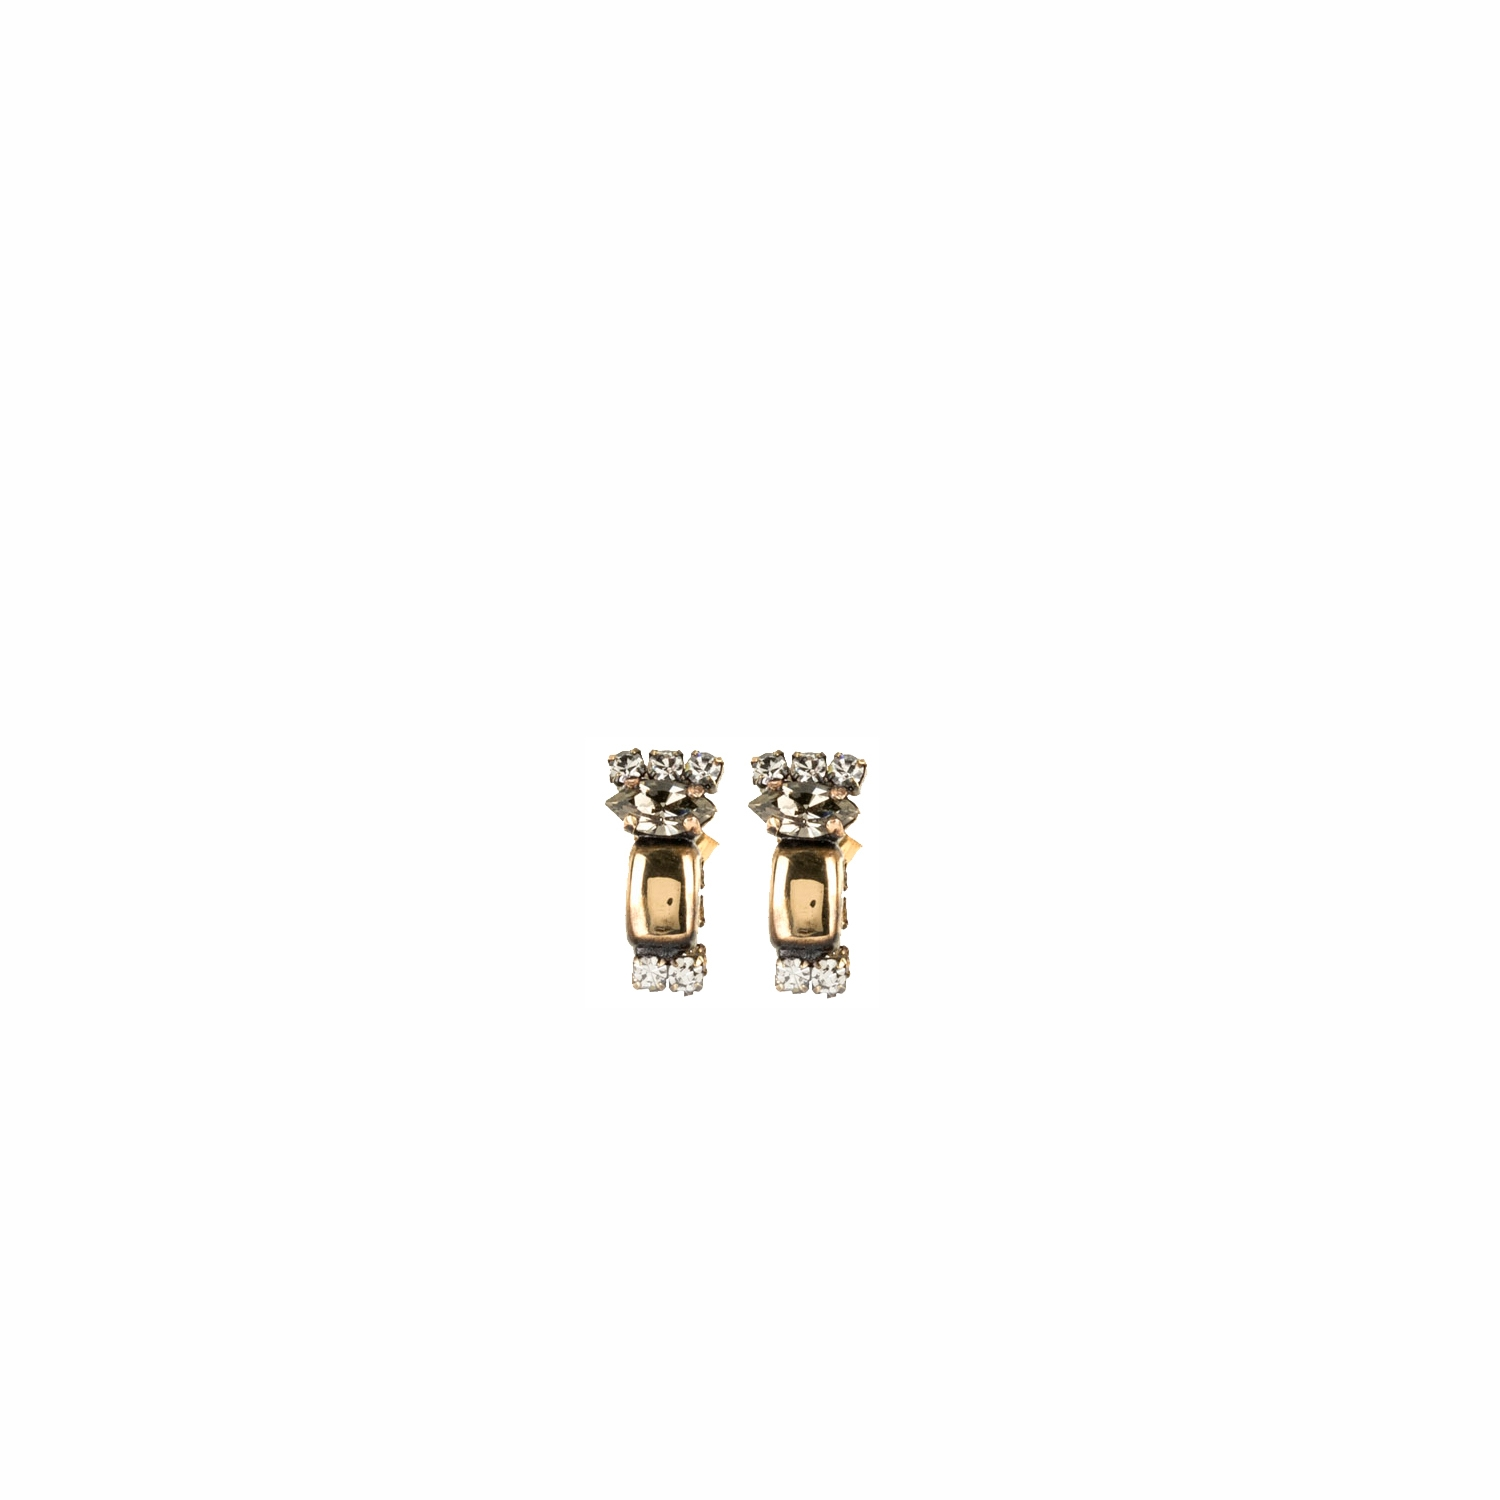 HALO & CO SMALL JEWELLED METAL OBLONG STUDS